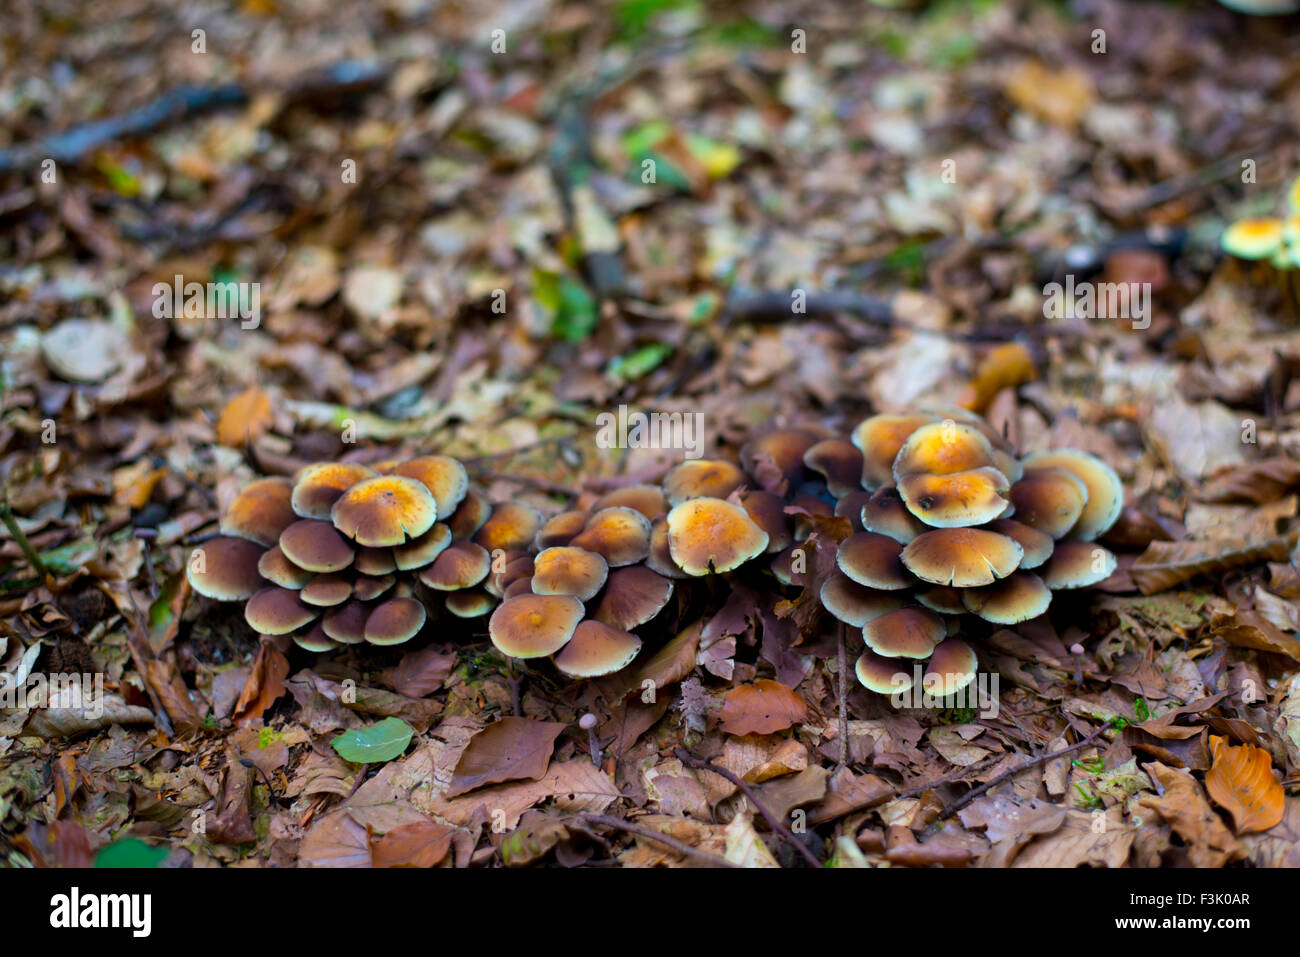 Forest fungi in the Netherlands Stock Photo